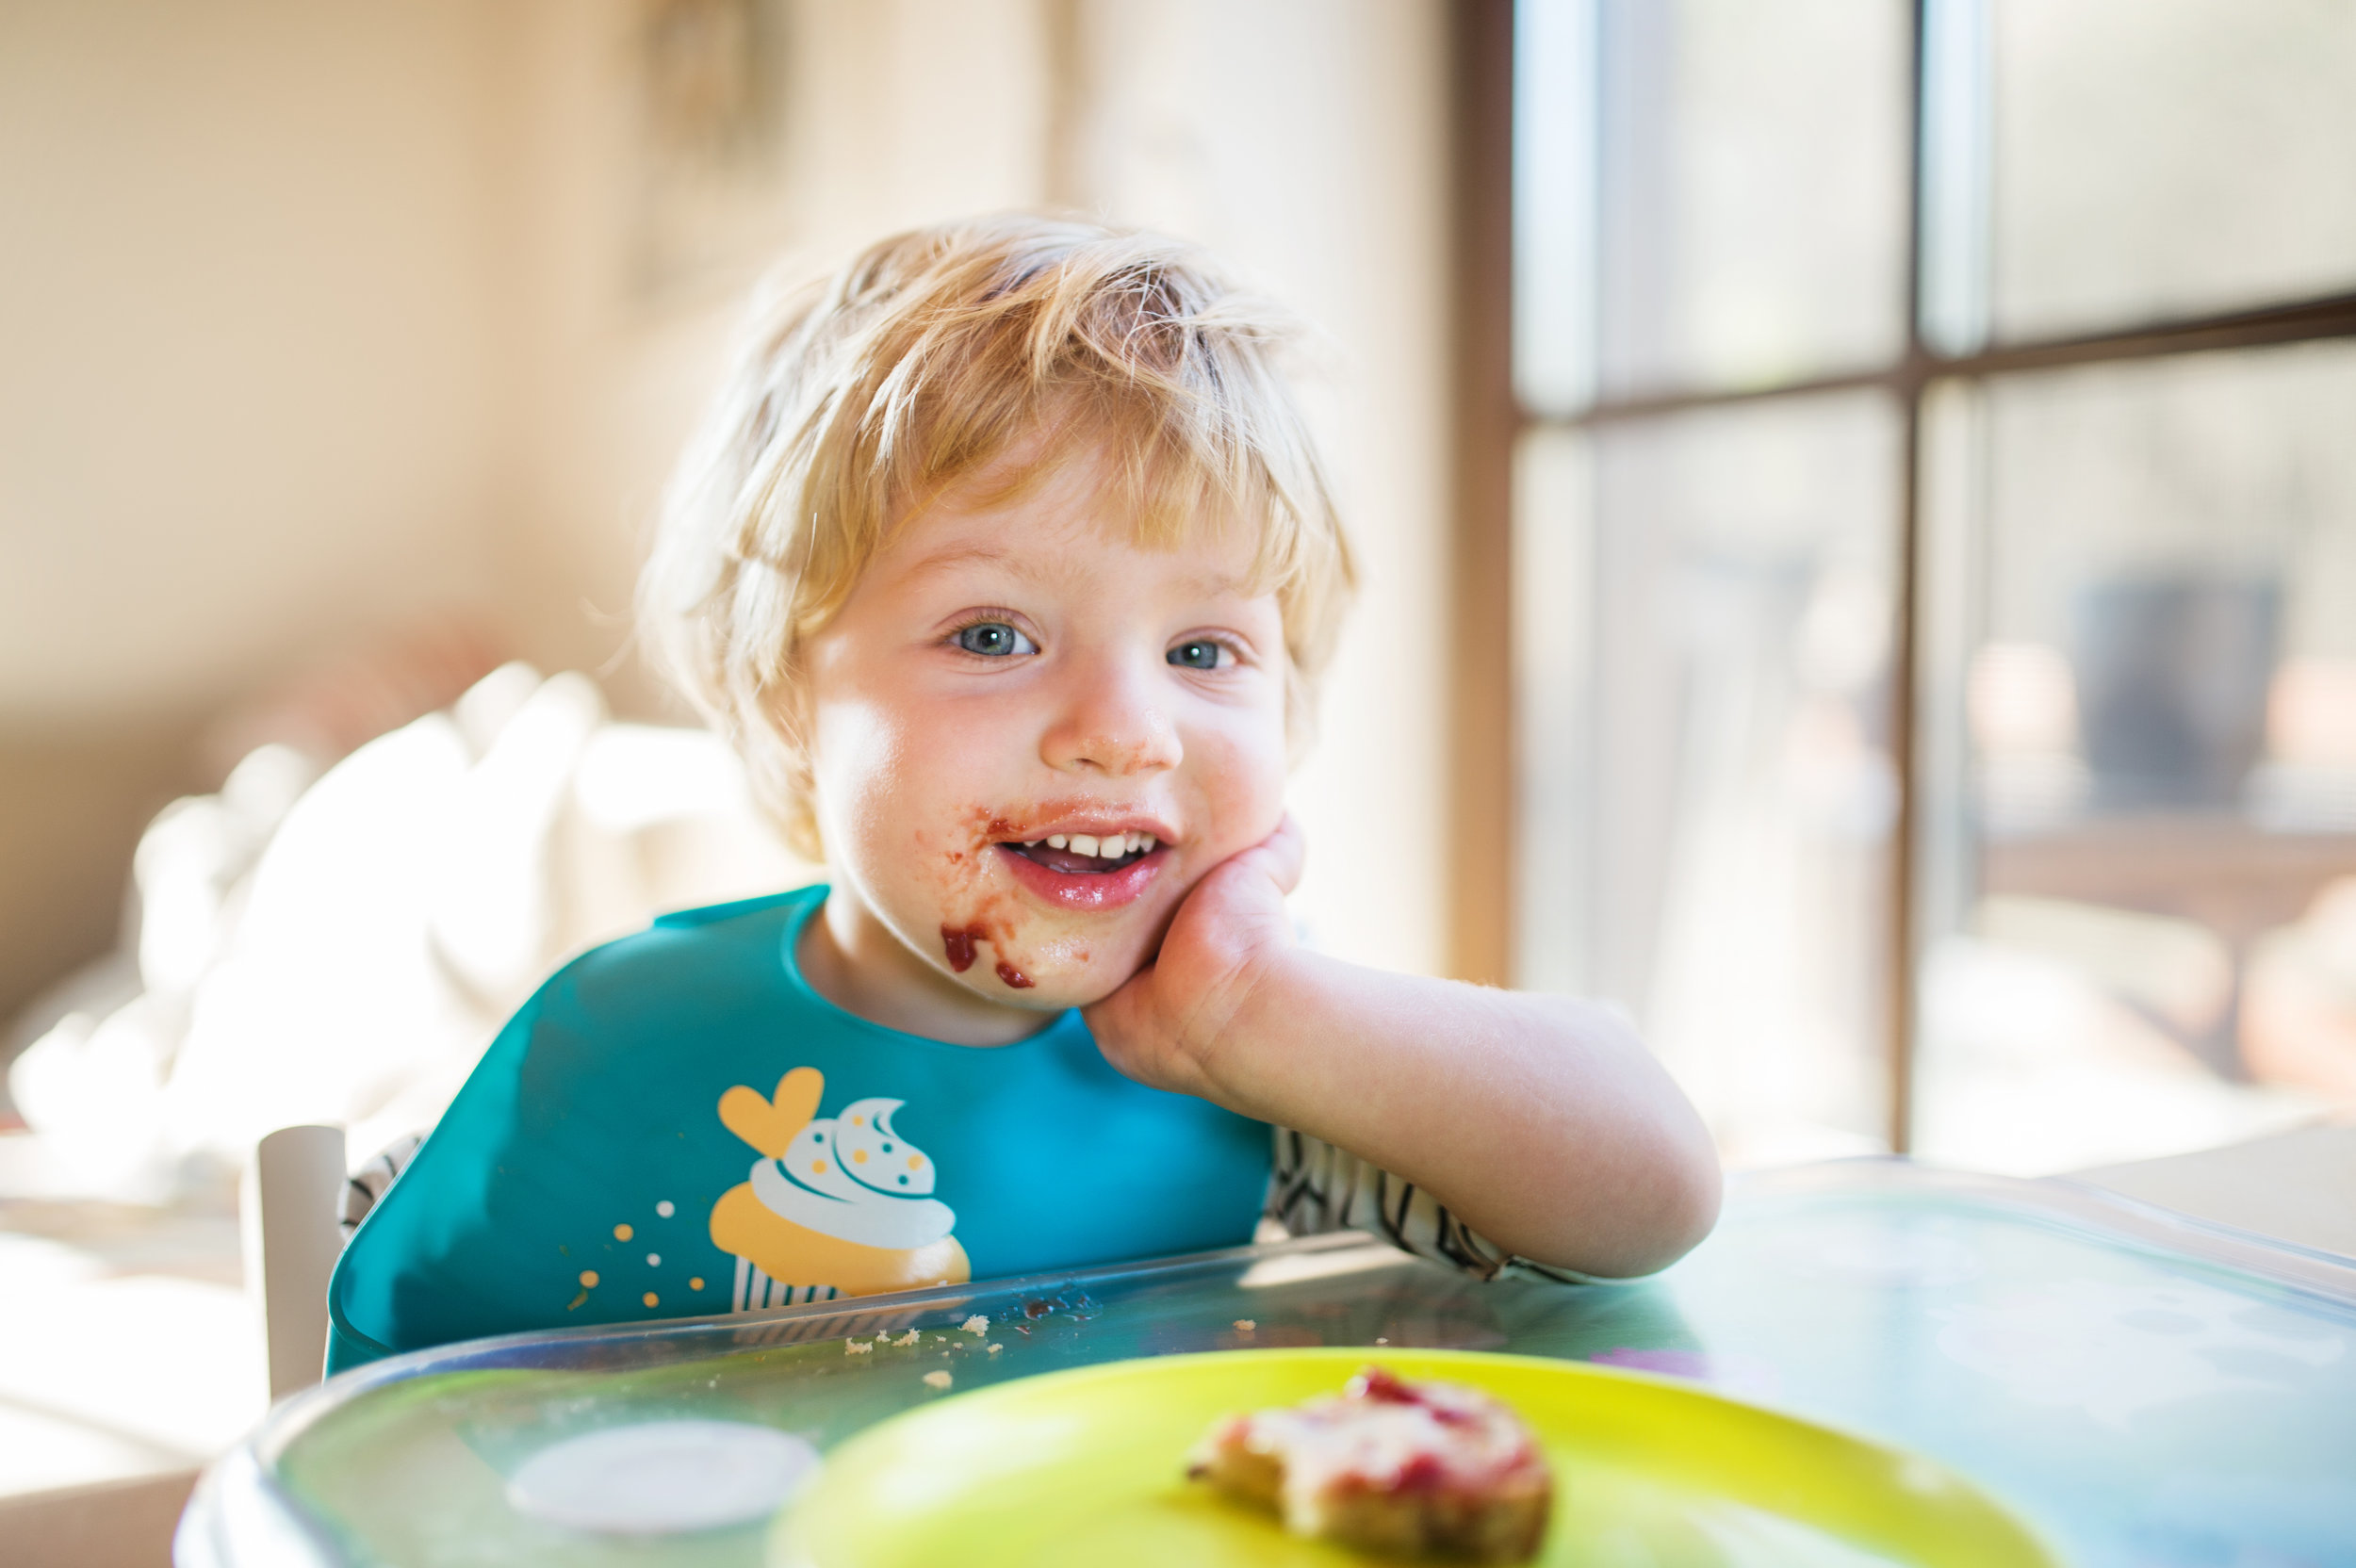 a-toddler-boy-eating-at-home-PGZ9M57.jpg